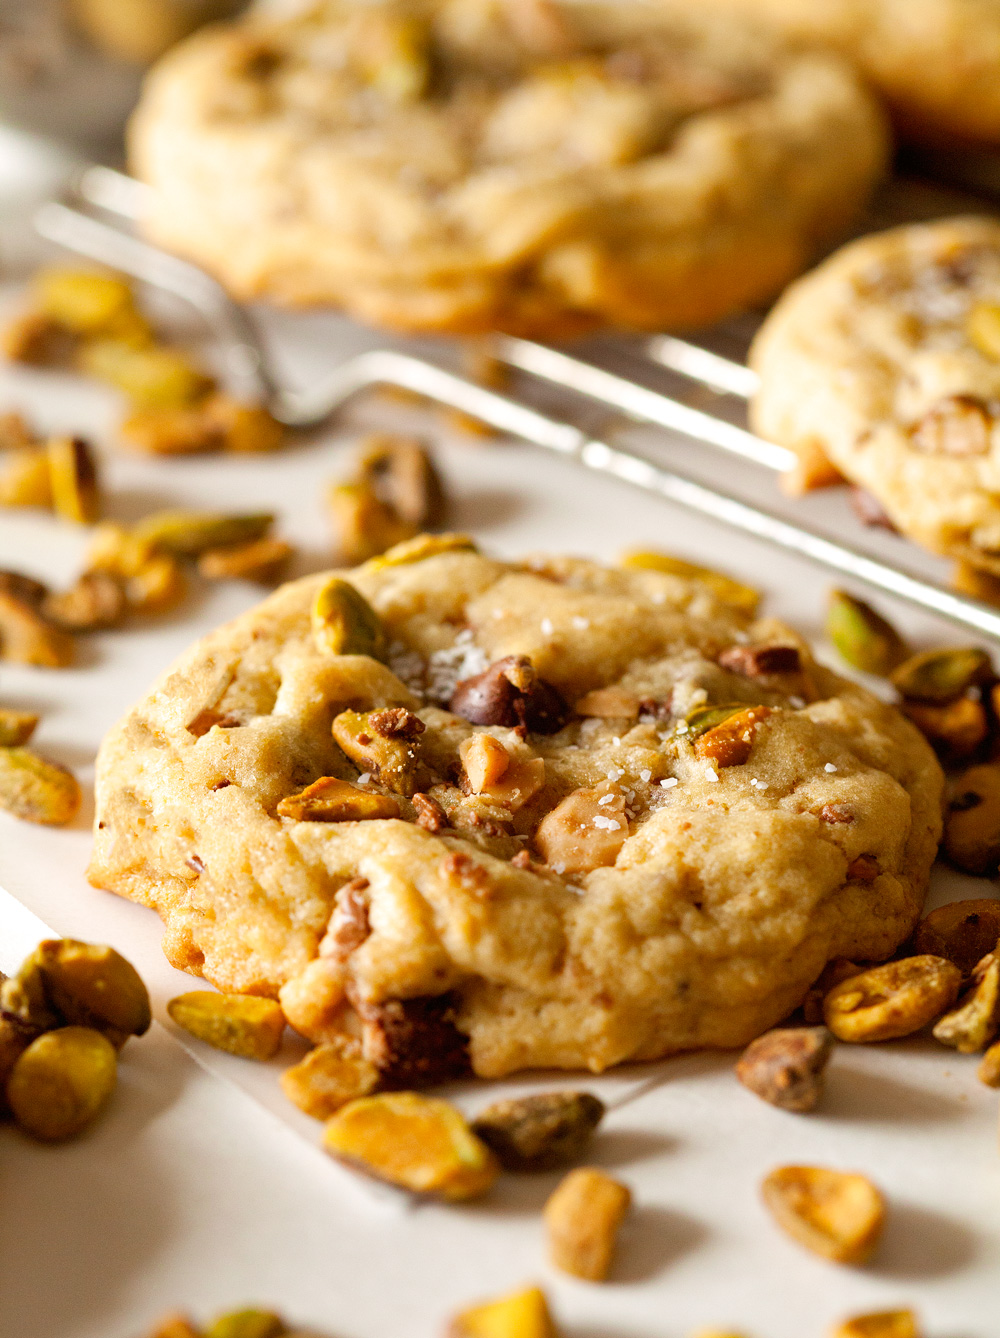 Pistachio-Toffee-Crunch-Cookies